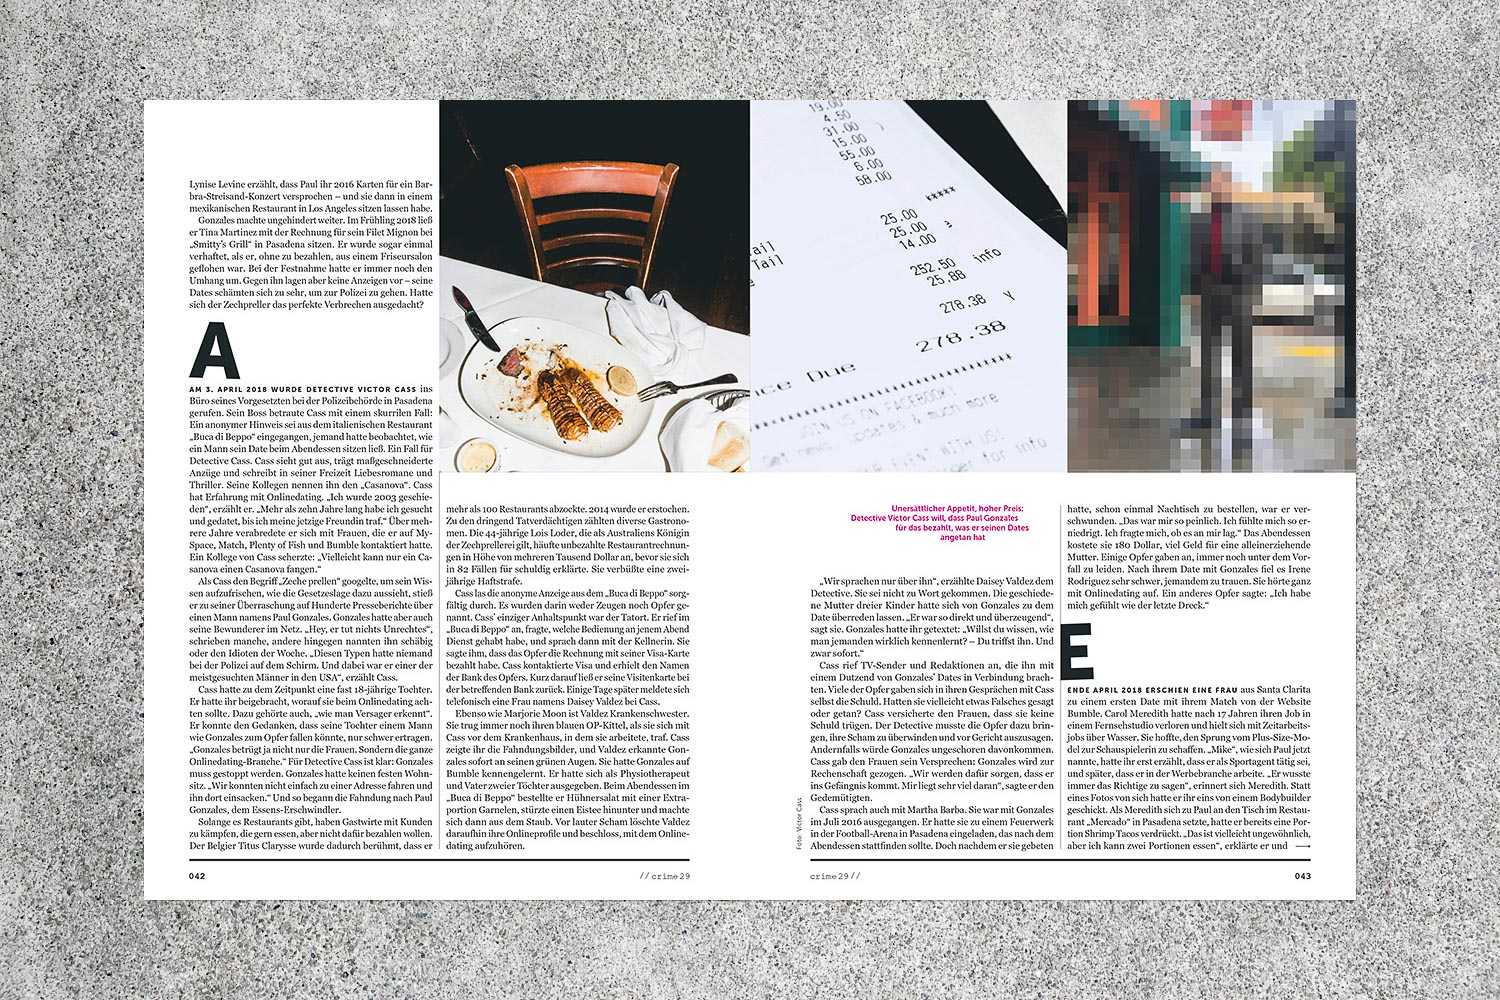 PATRICK STRATTNER PHOTOGRAPHY | TEAR SHEETS | Dine-and-Dash Date / STERN Crime